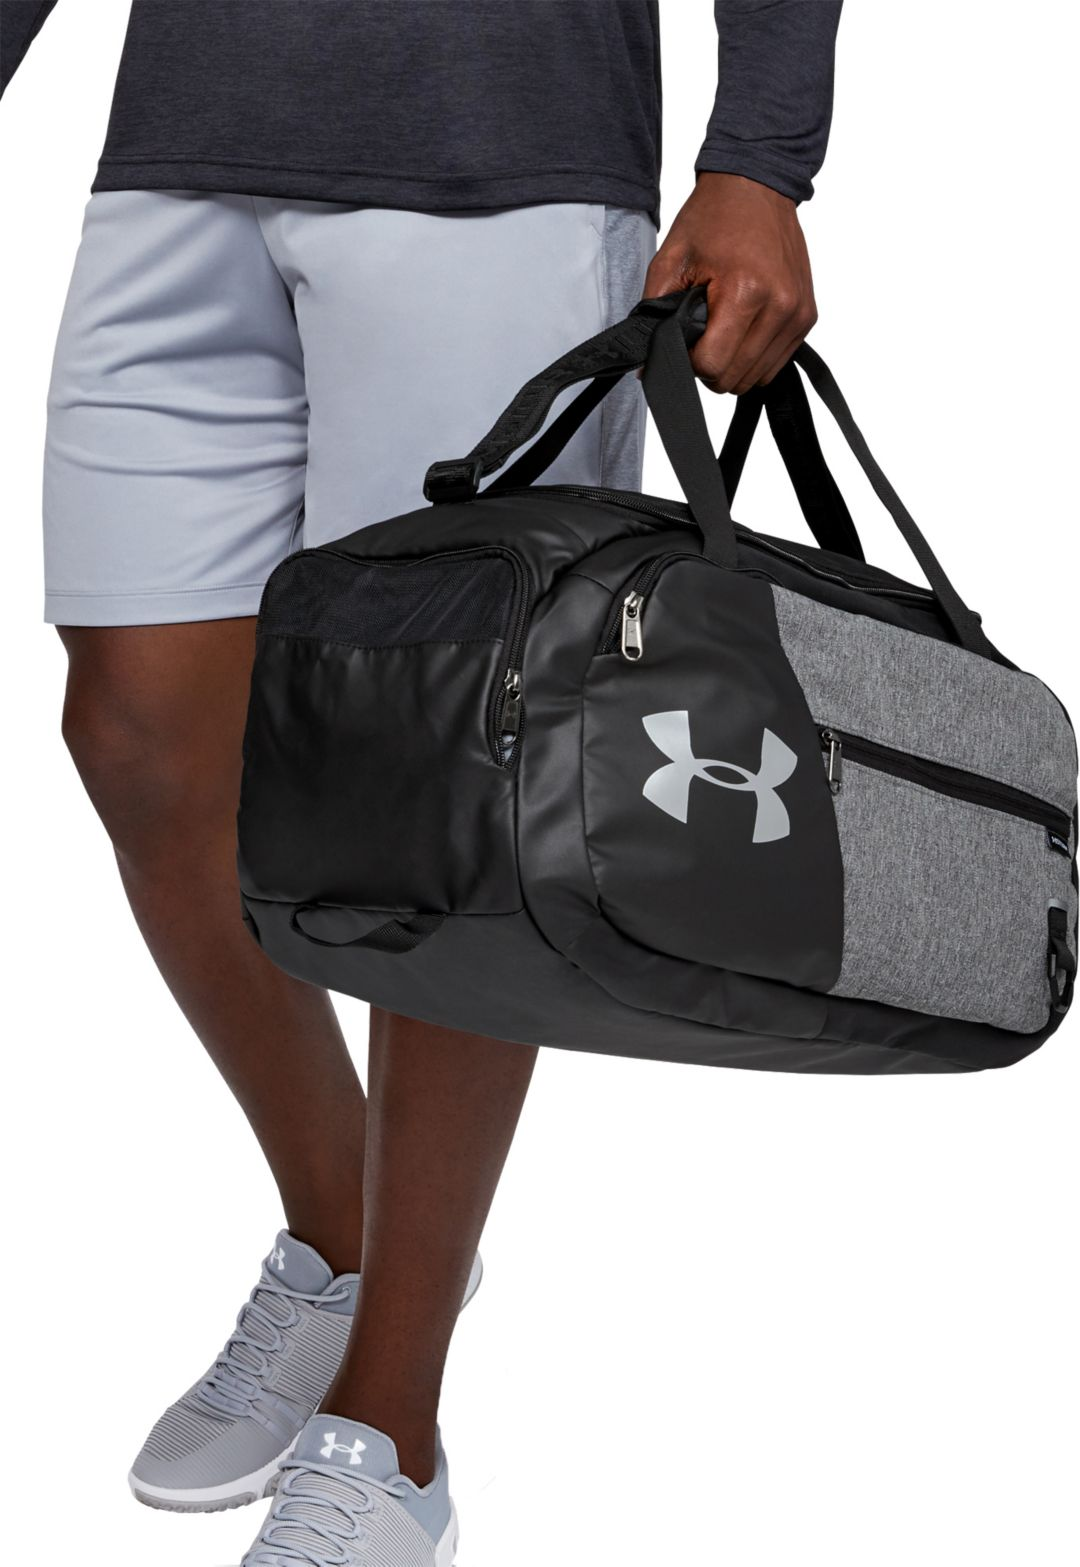 2f5f656a71 Under Armour Undeniable 4.0 Small Duffle Bag | DICK'S Sporting Goods